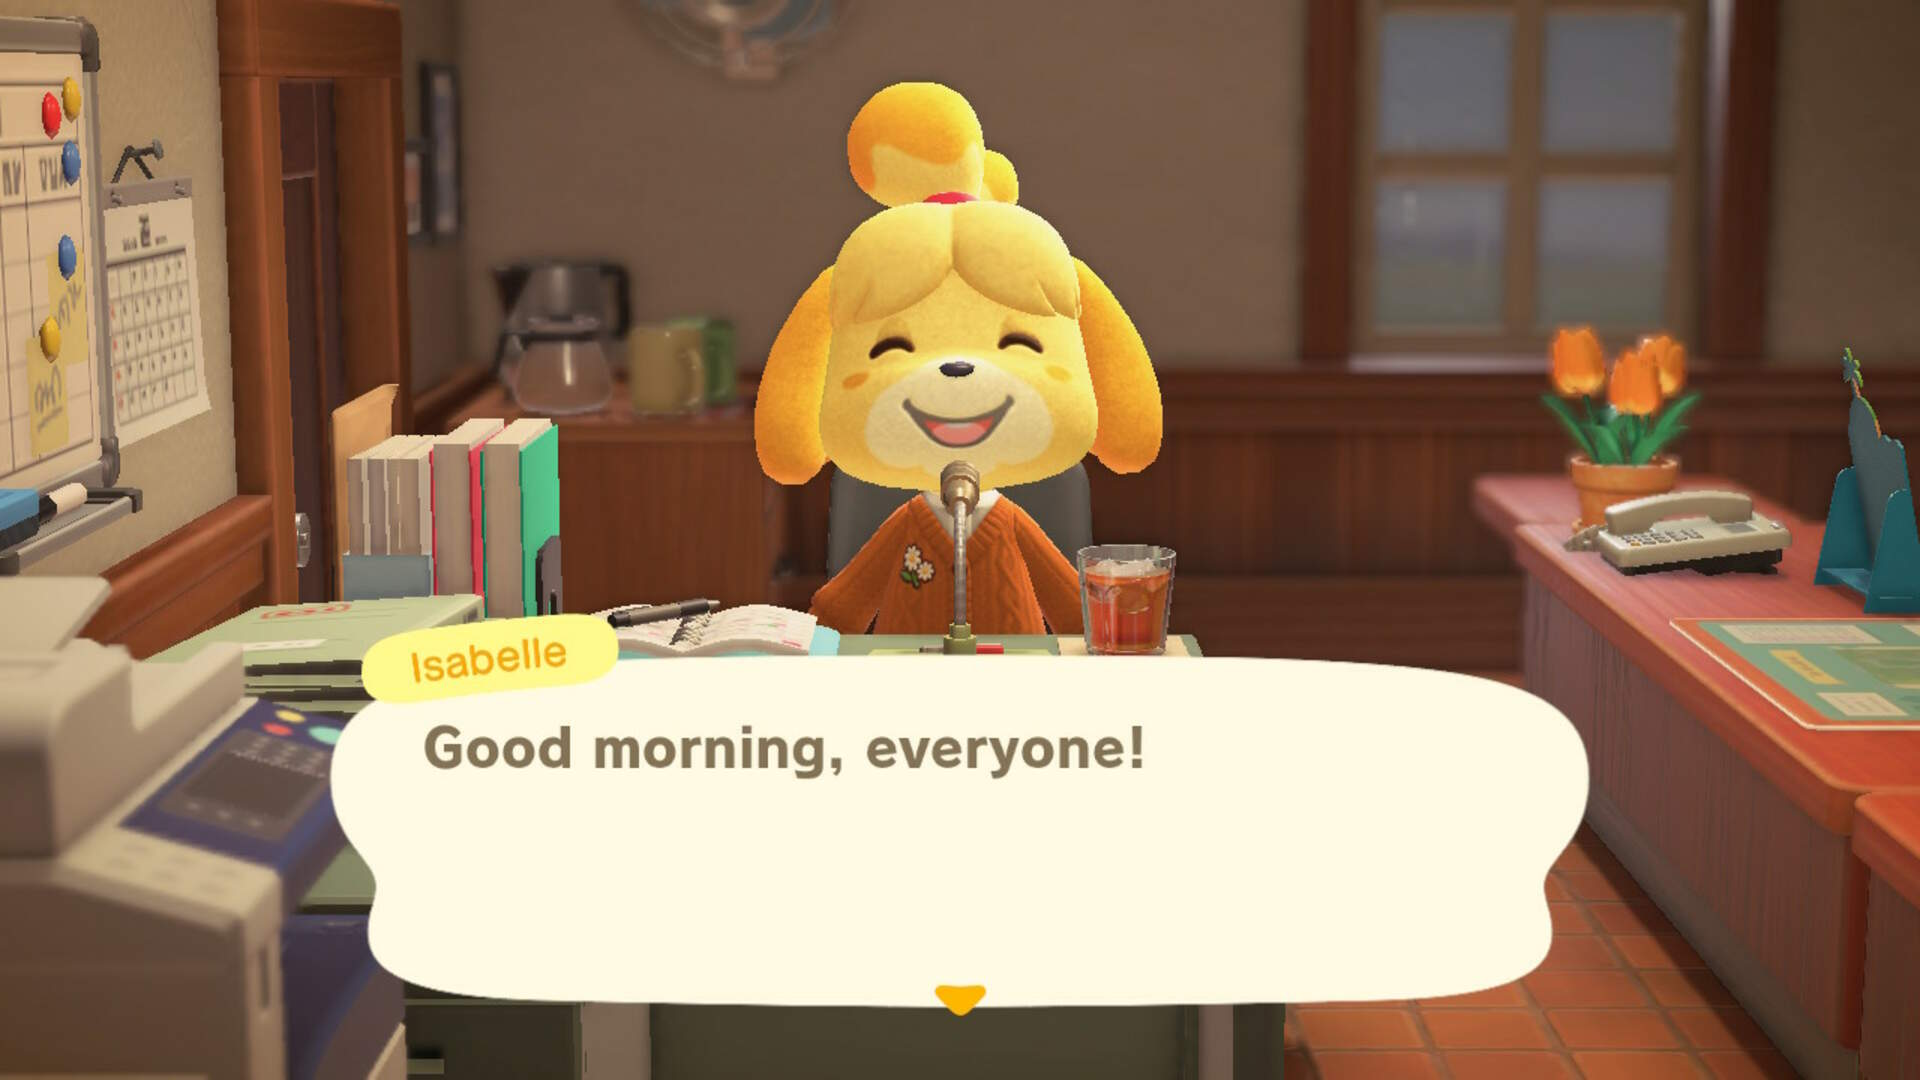 Animal Crossing New Horizons: How to Get Isabelle to Come to Your Island